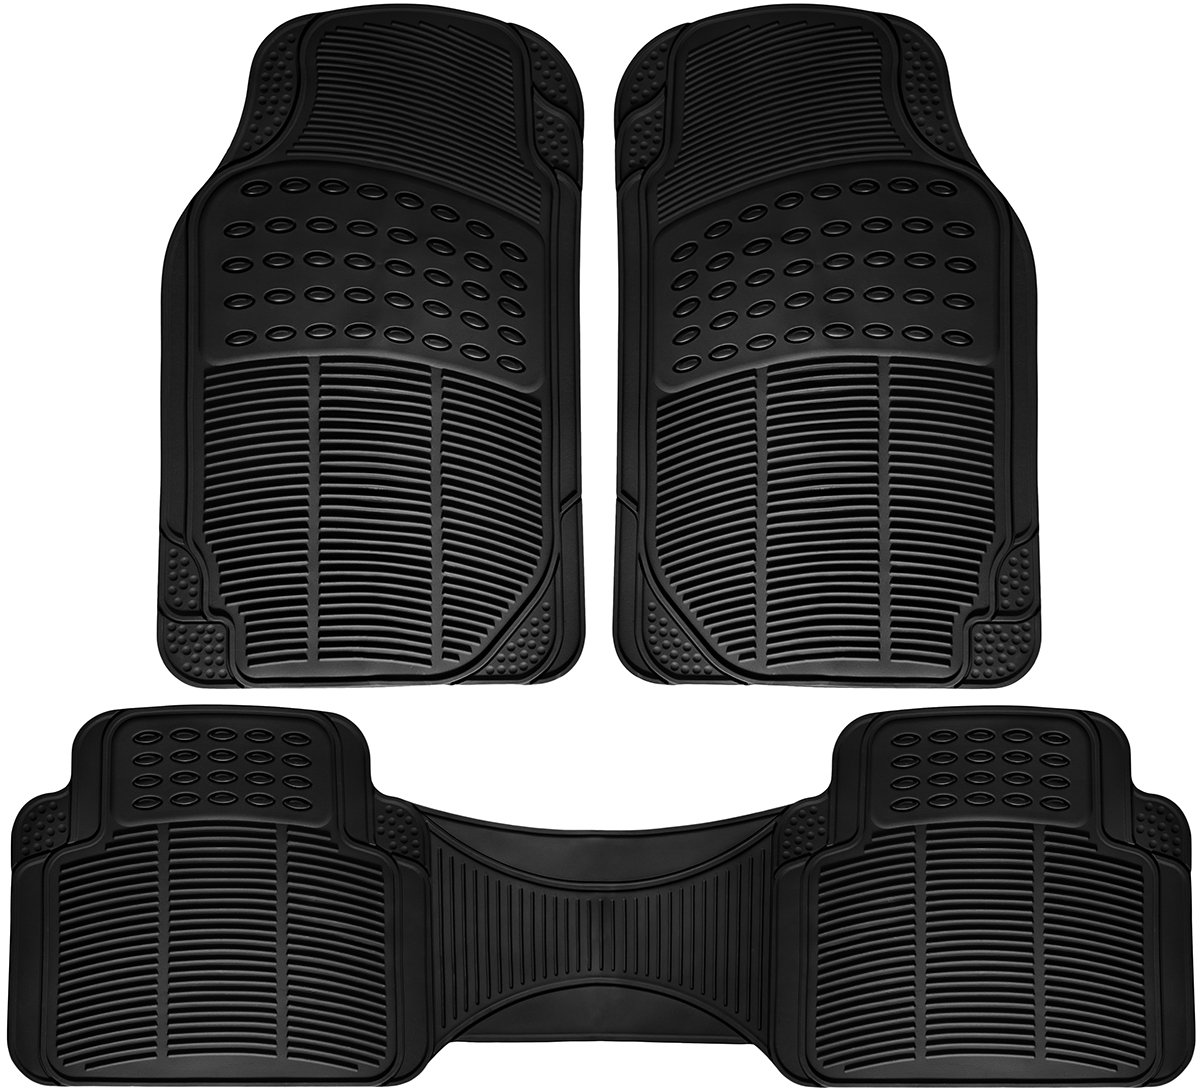 4 Piece Set Rubber-Lined All-Weather Heavy-Duty Protection for All Vehicles Beige OxGord Luxe Carpet-Floor-Mats Set for Car